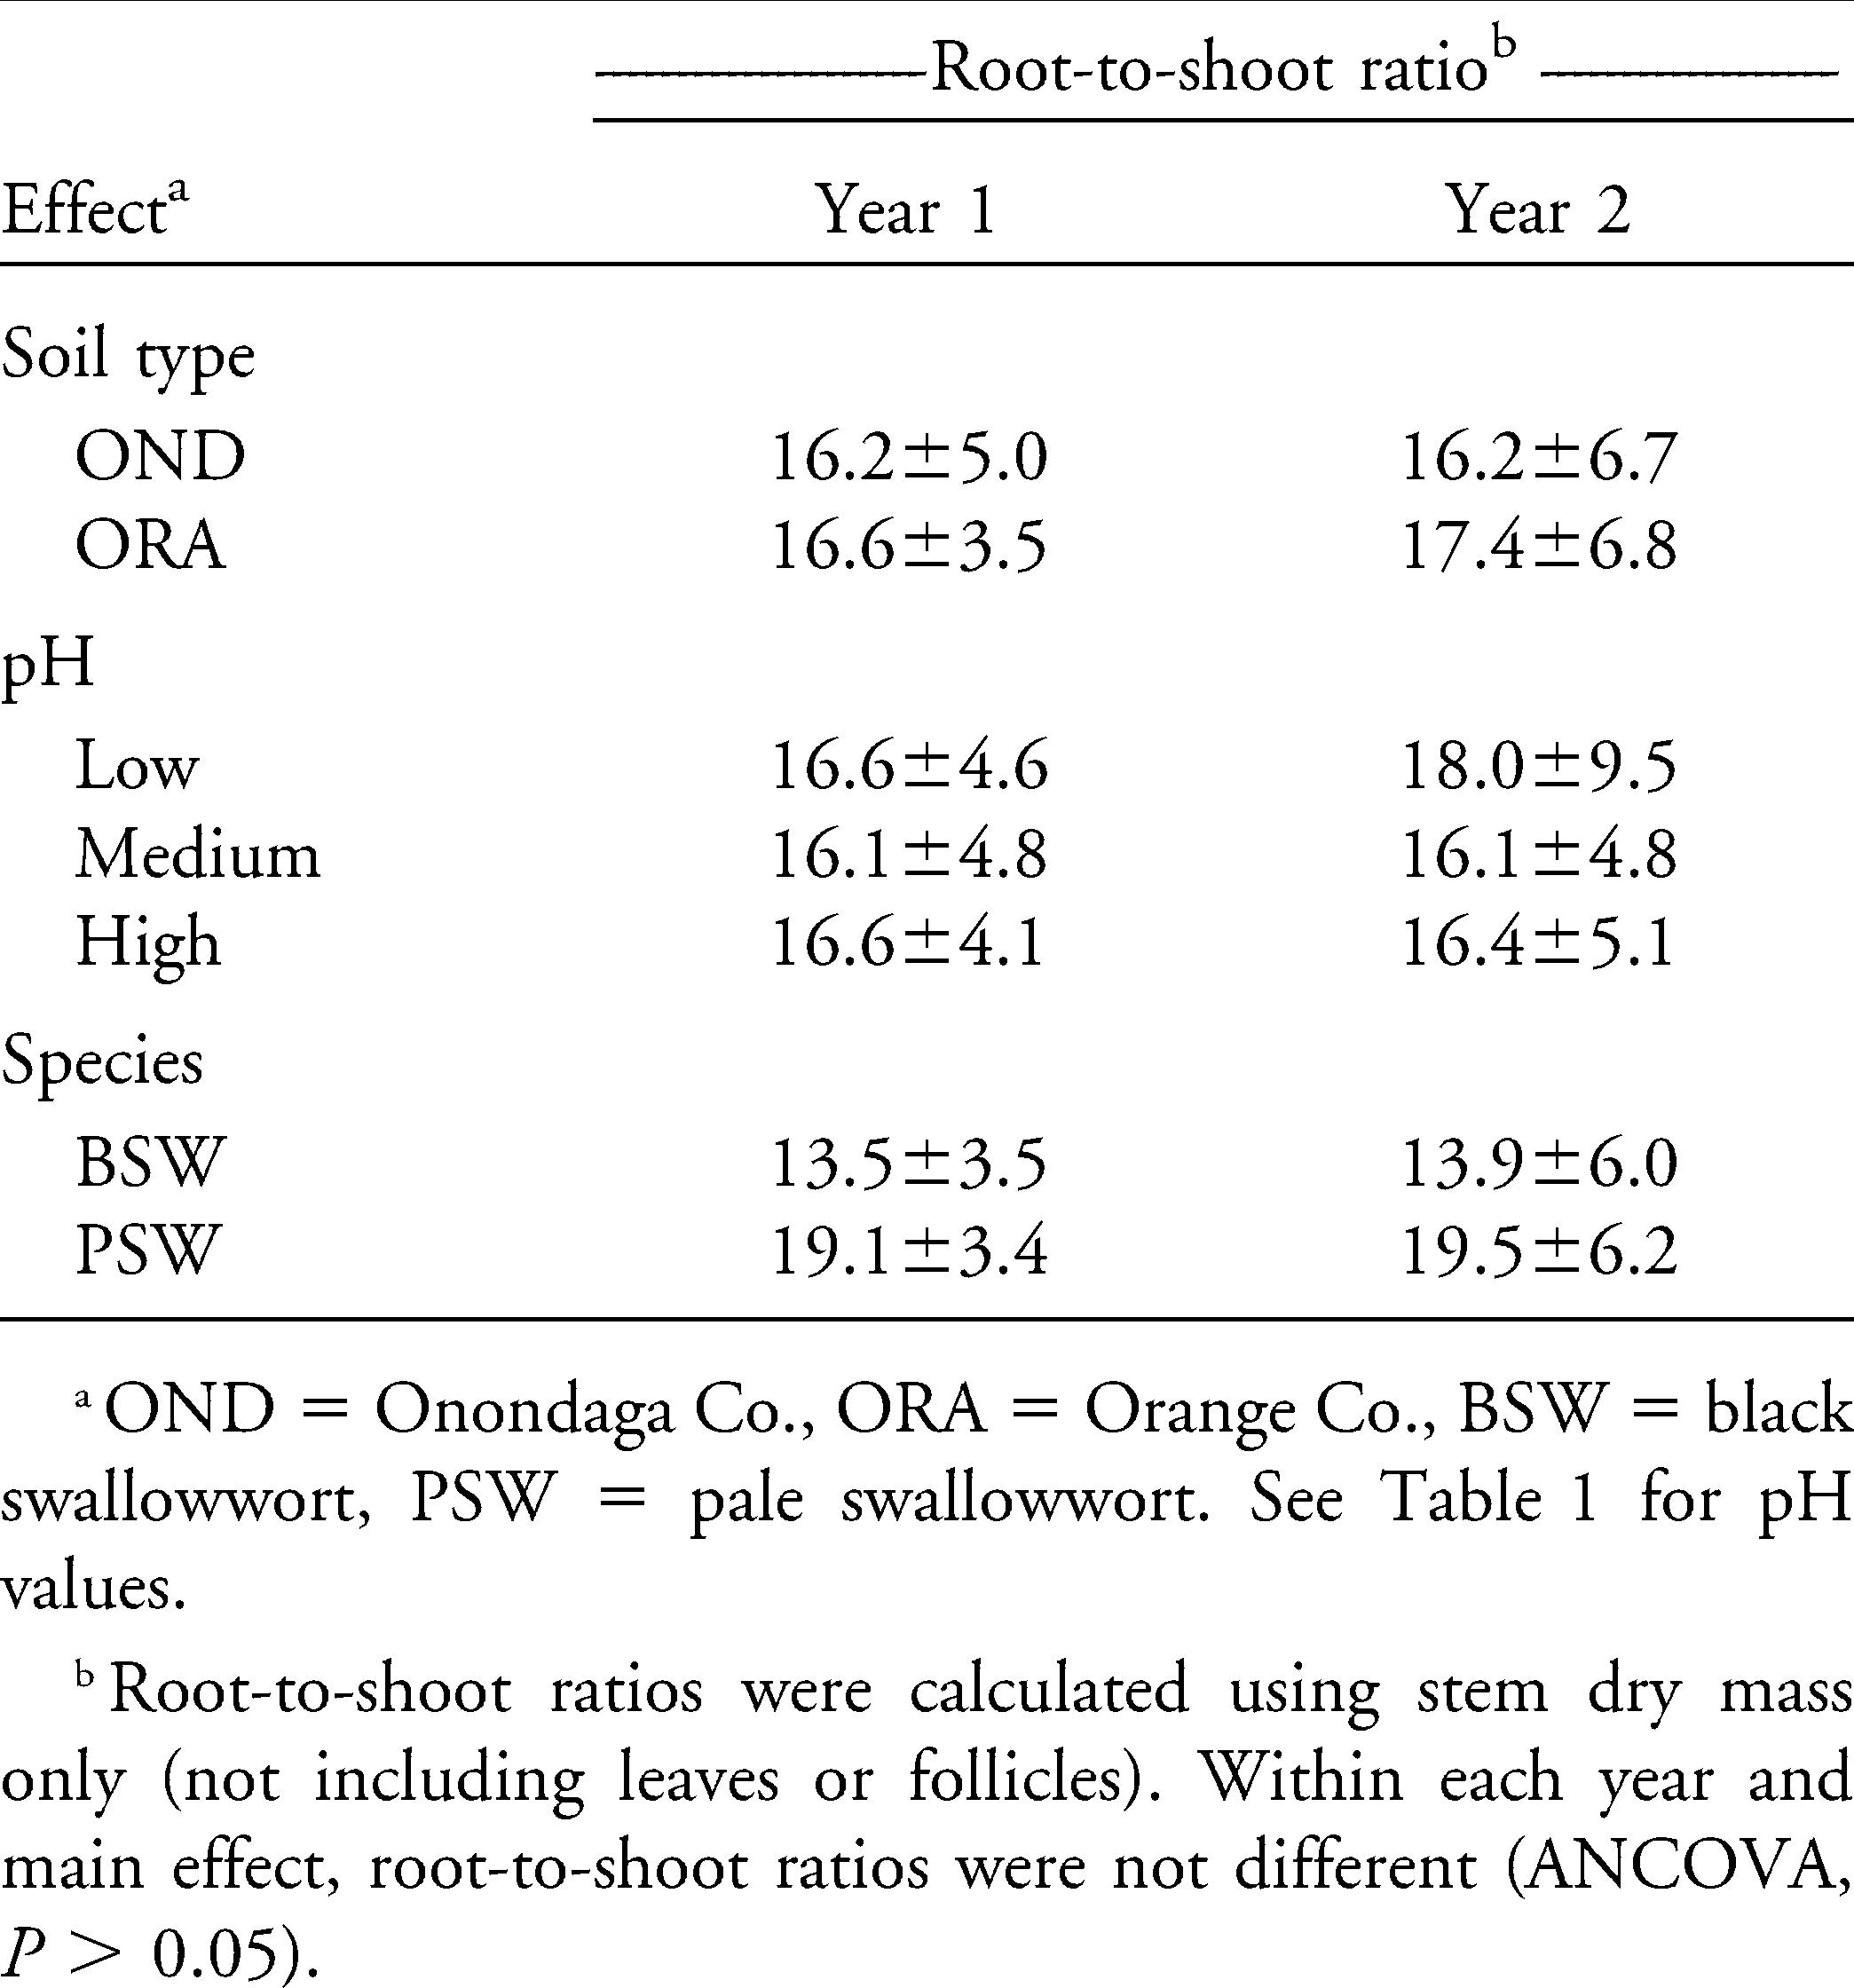 Emergence and Performance of Two Invasive Swallowworts